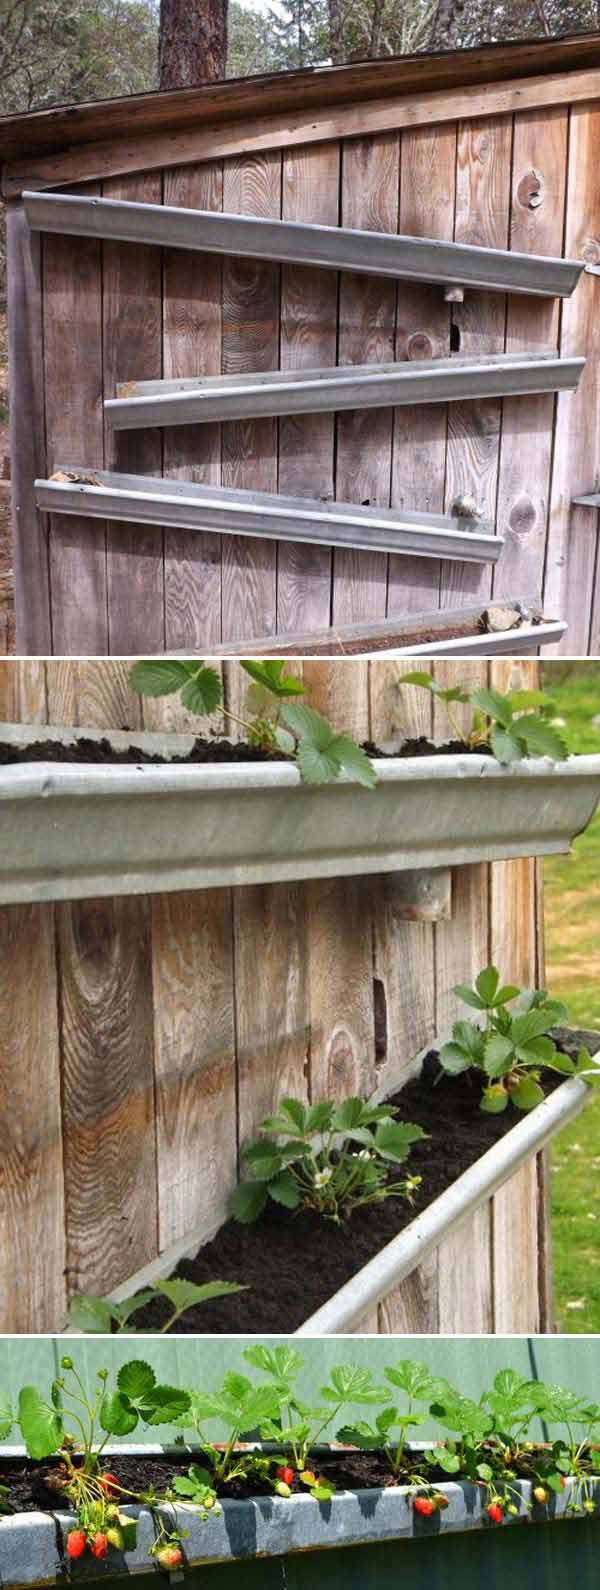 wooden planters for strawberries with Diy Ways Grow Vertical Strawberry Garden on School Fruit Garden as well 473511348291272567 besides Vertical Herb Garden as well Pallet Strawberry Planter besides Vertical Pyramid Garden Planter Diy.